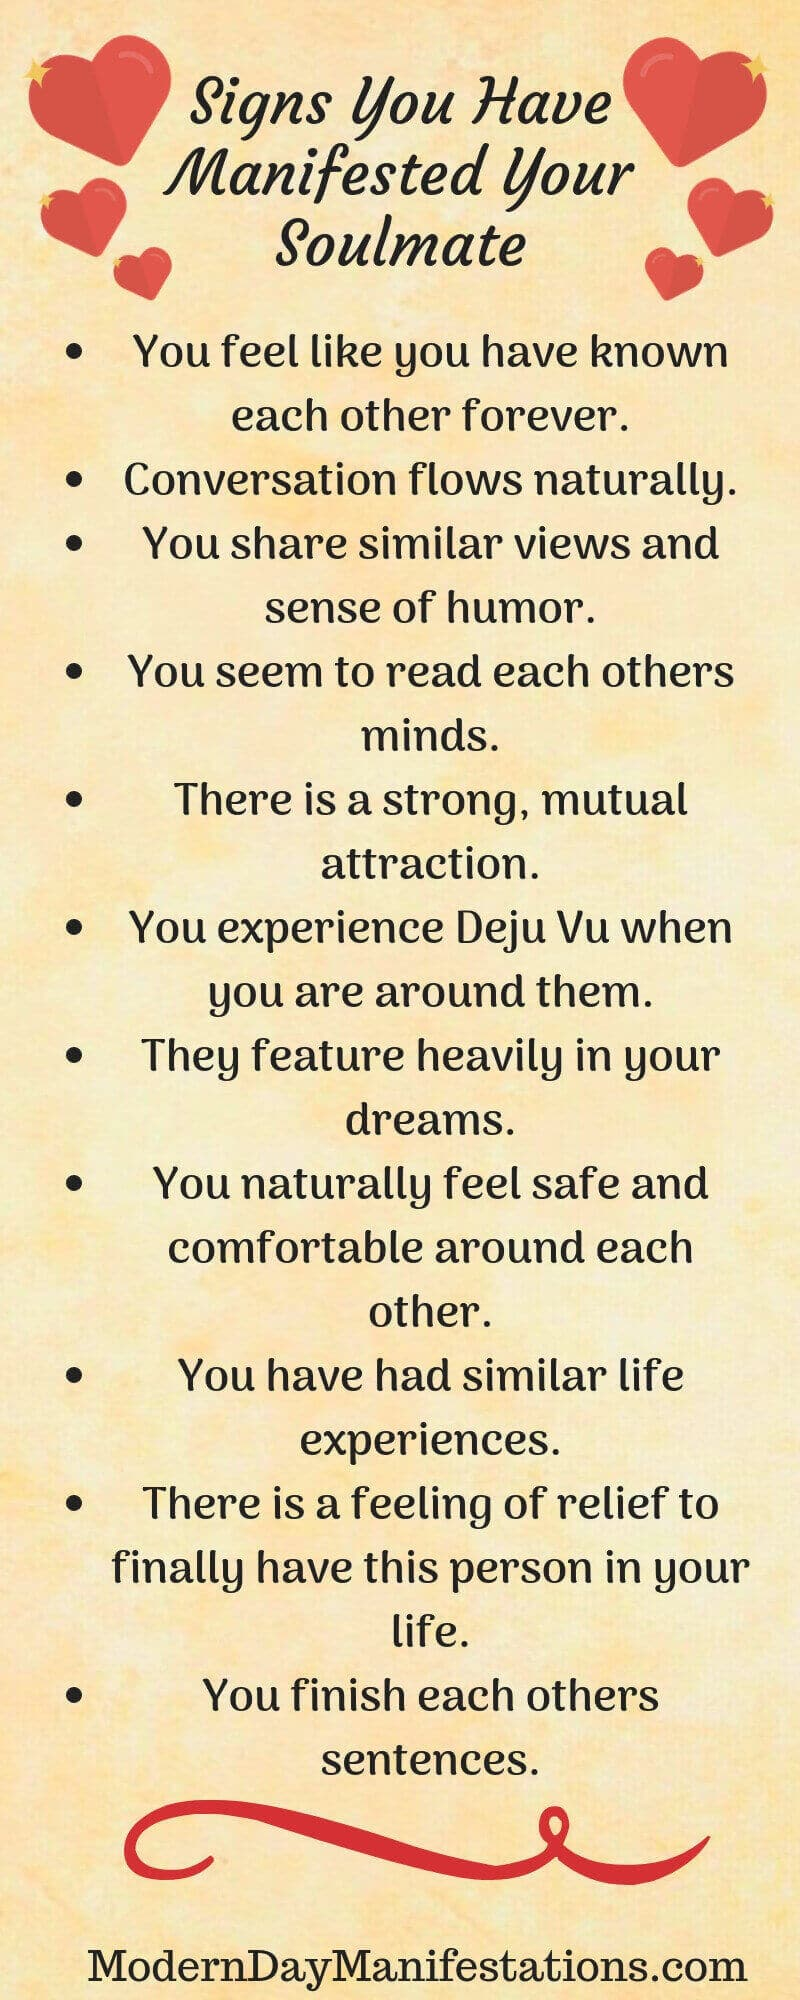 Signs you have manifested your soulmate